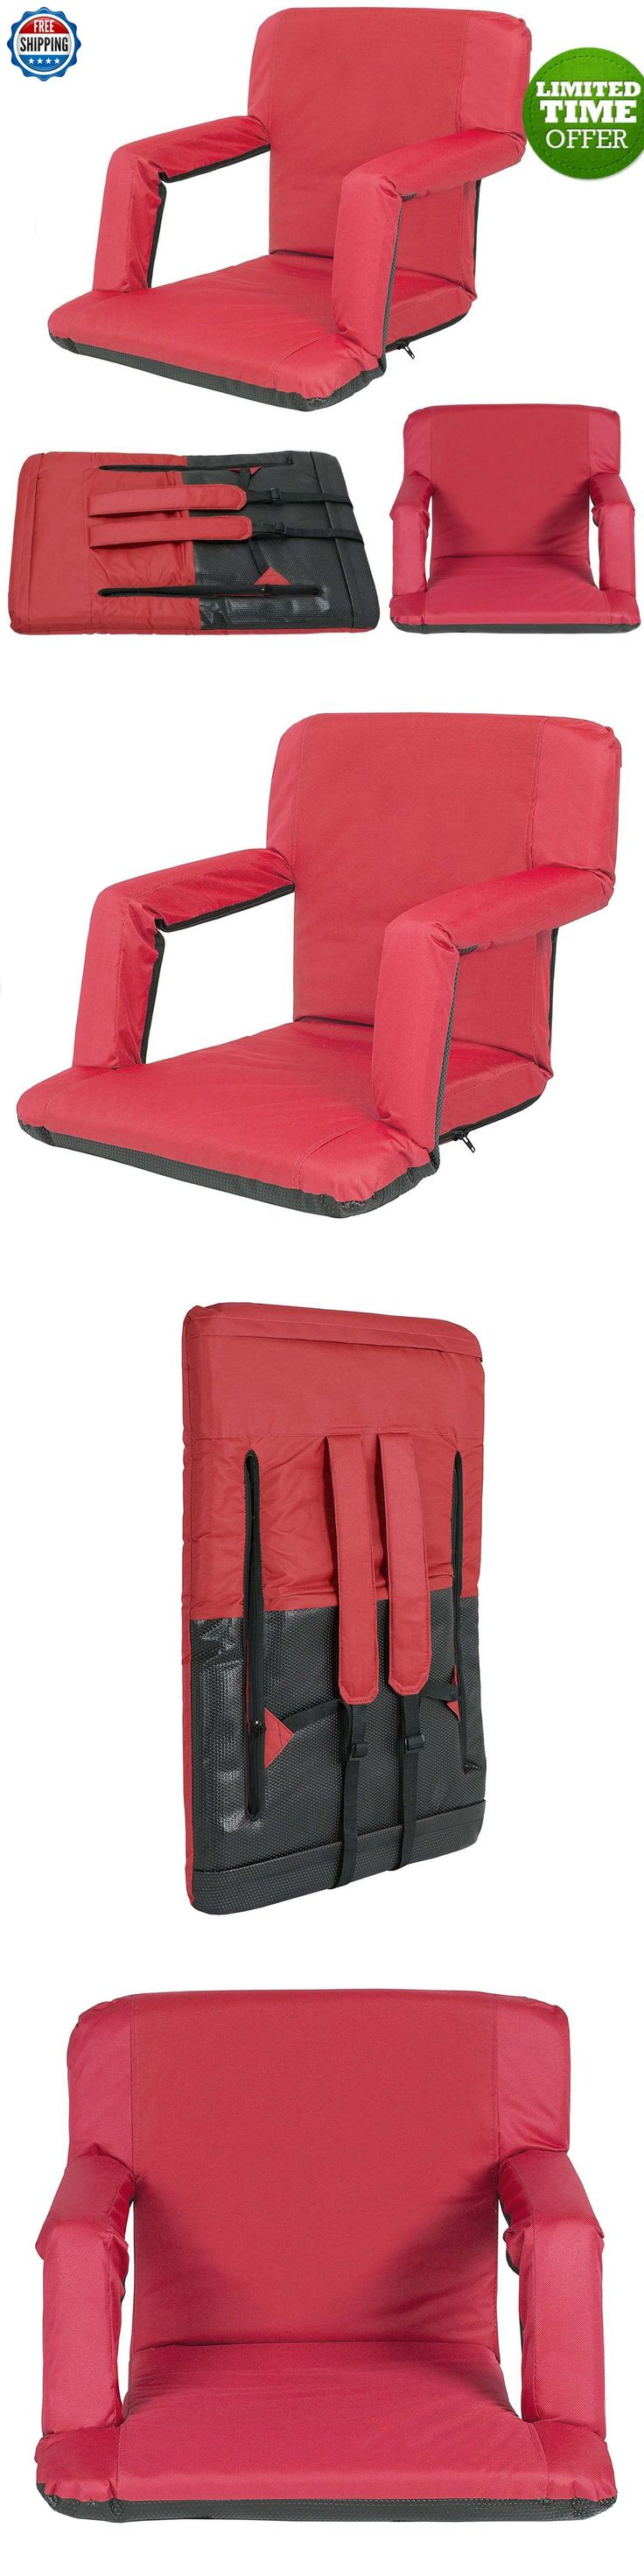 Other Outdoor Sports 159048: Padded Stadium Chair Reclining Seat Red Portable Bleacher Cushion Bench Camping BUY IT NOW ONLY: $49.75